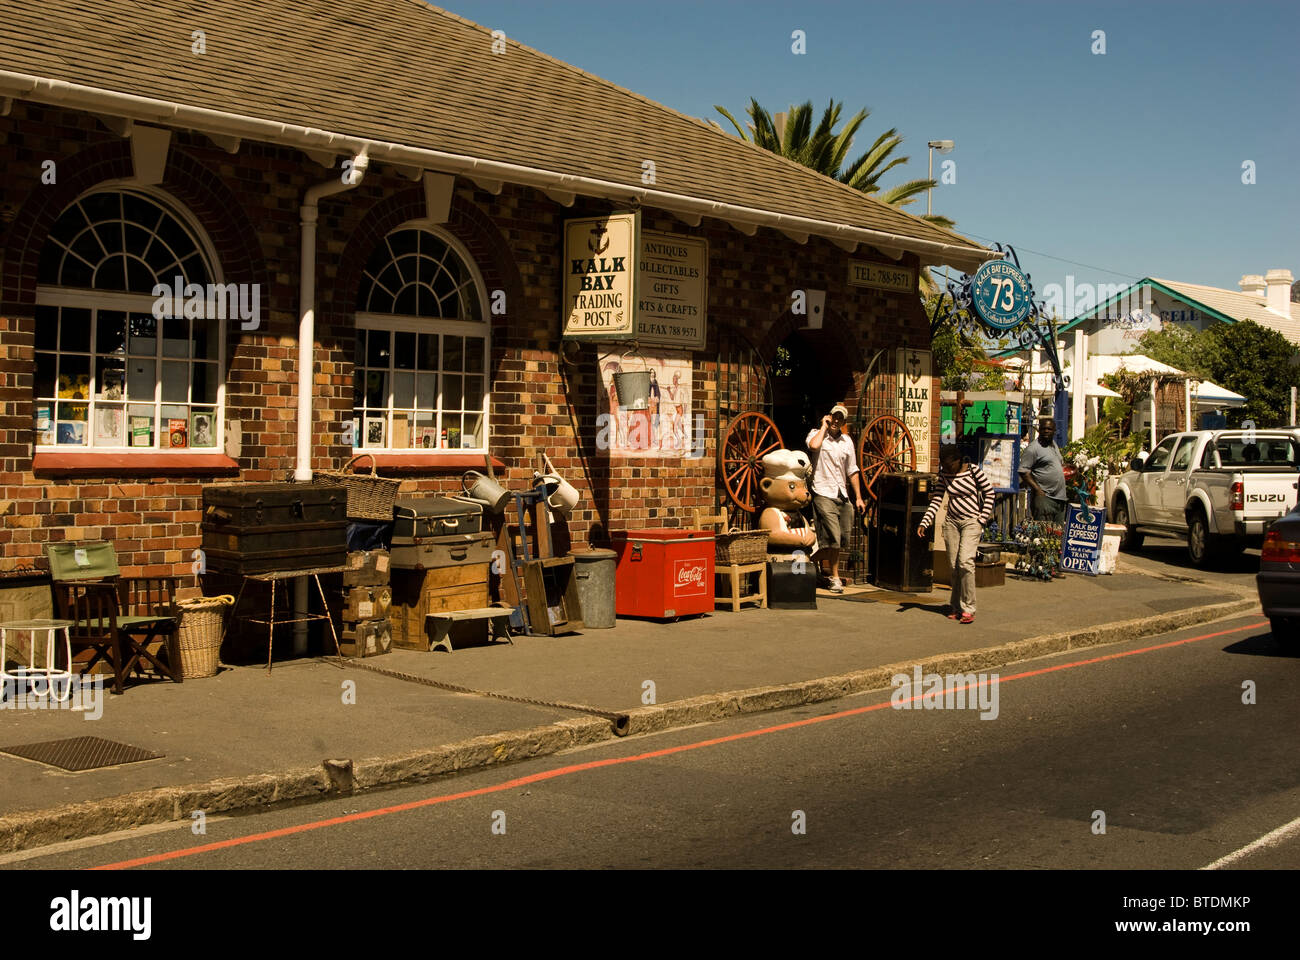 Exterior view of Kalk Bay Trading Post, a shop selling antiques and bric-a-brac - Stock Image